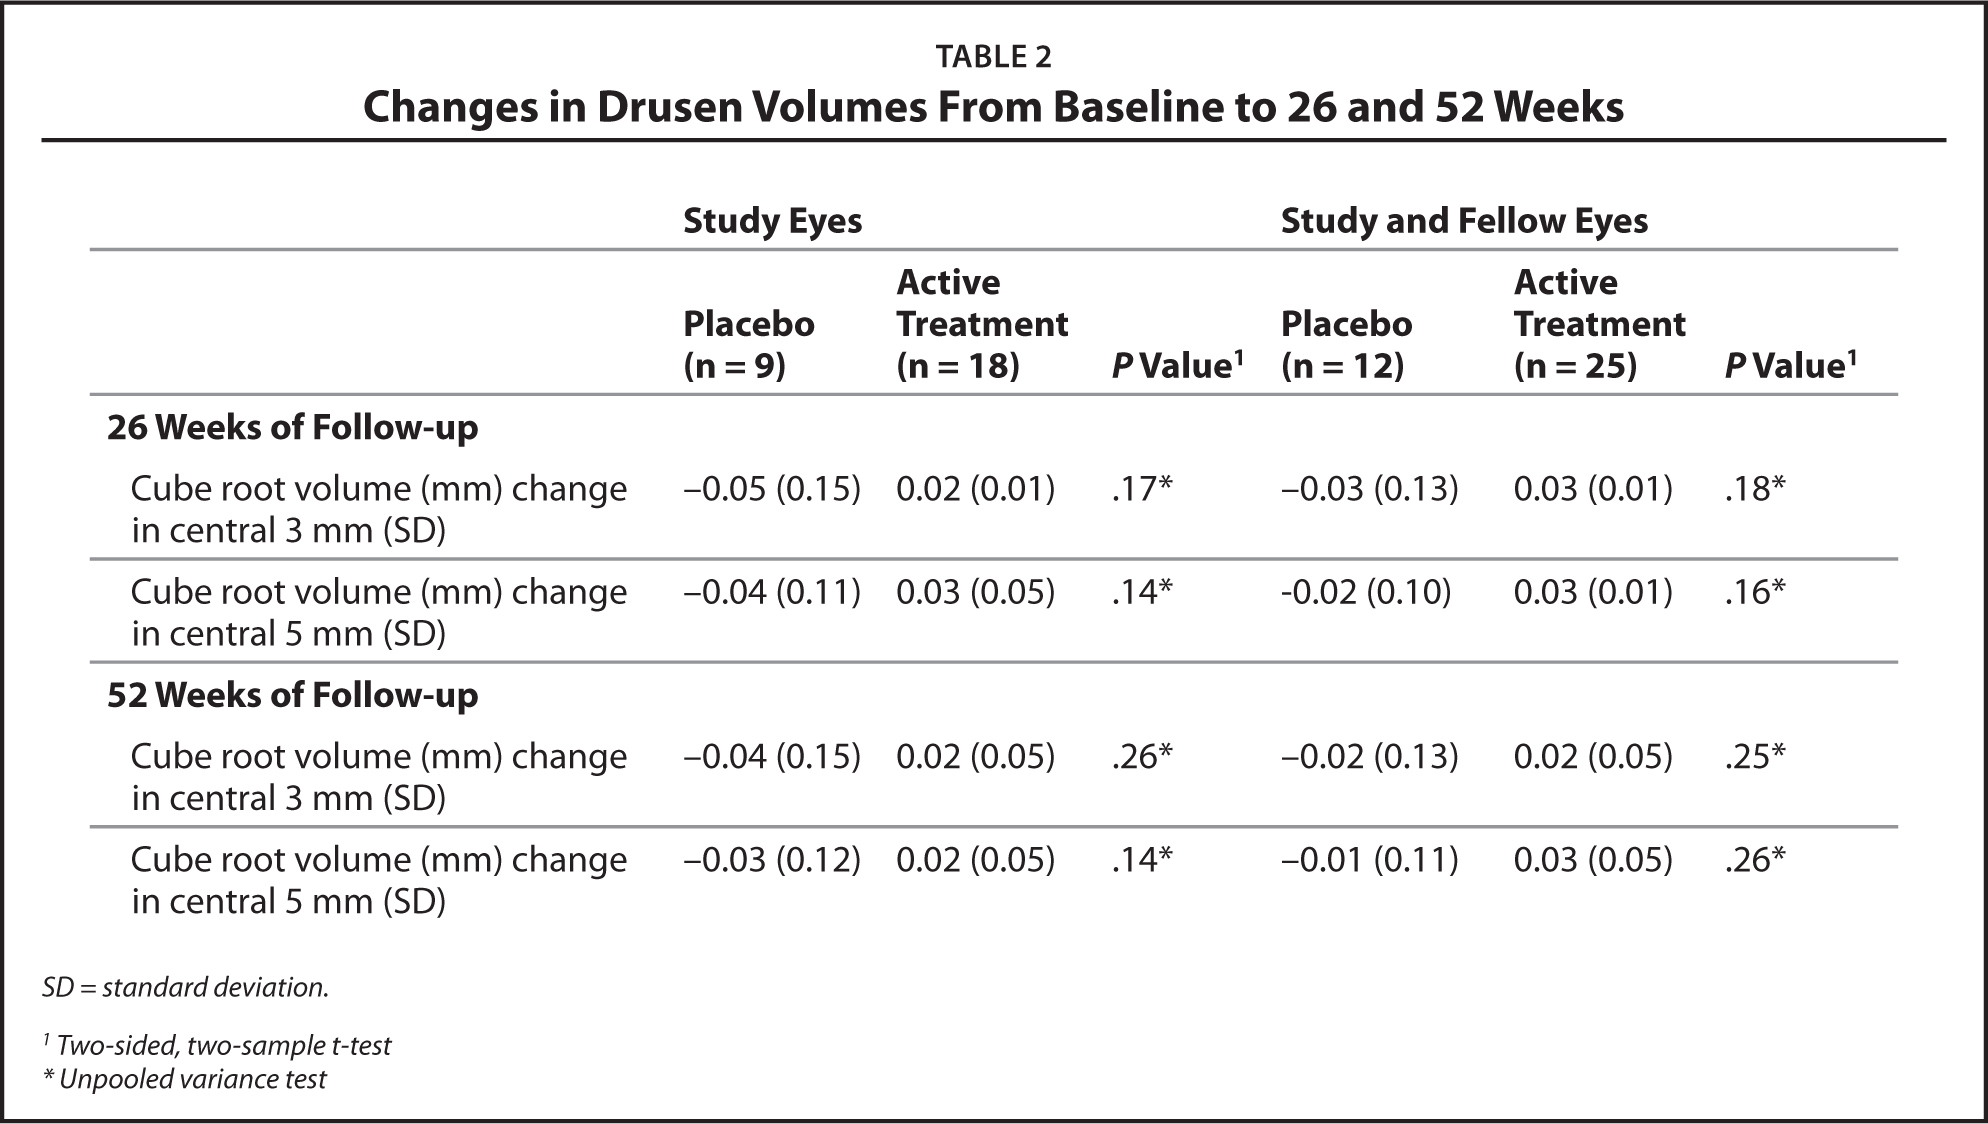 Changes in Drusen Volumes From Baseline to 26 and 52 Weeks